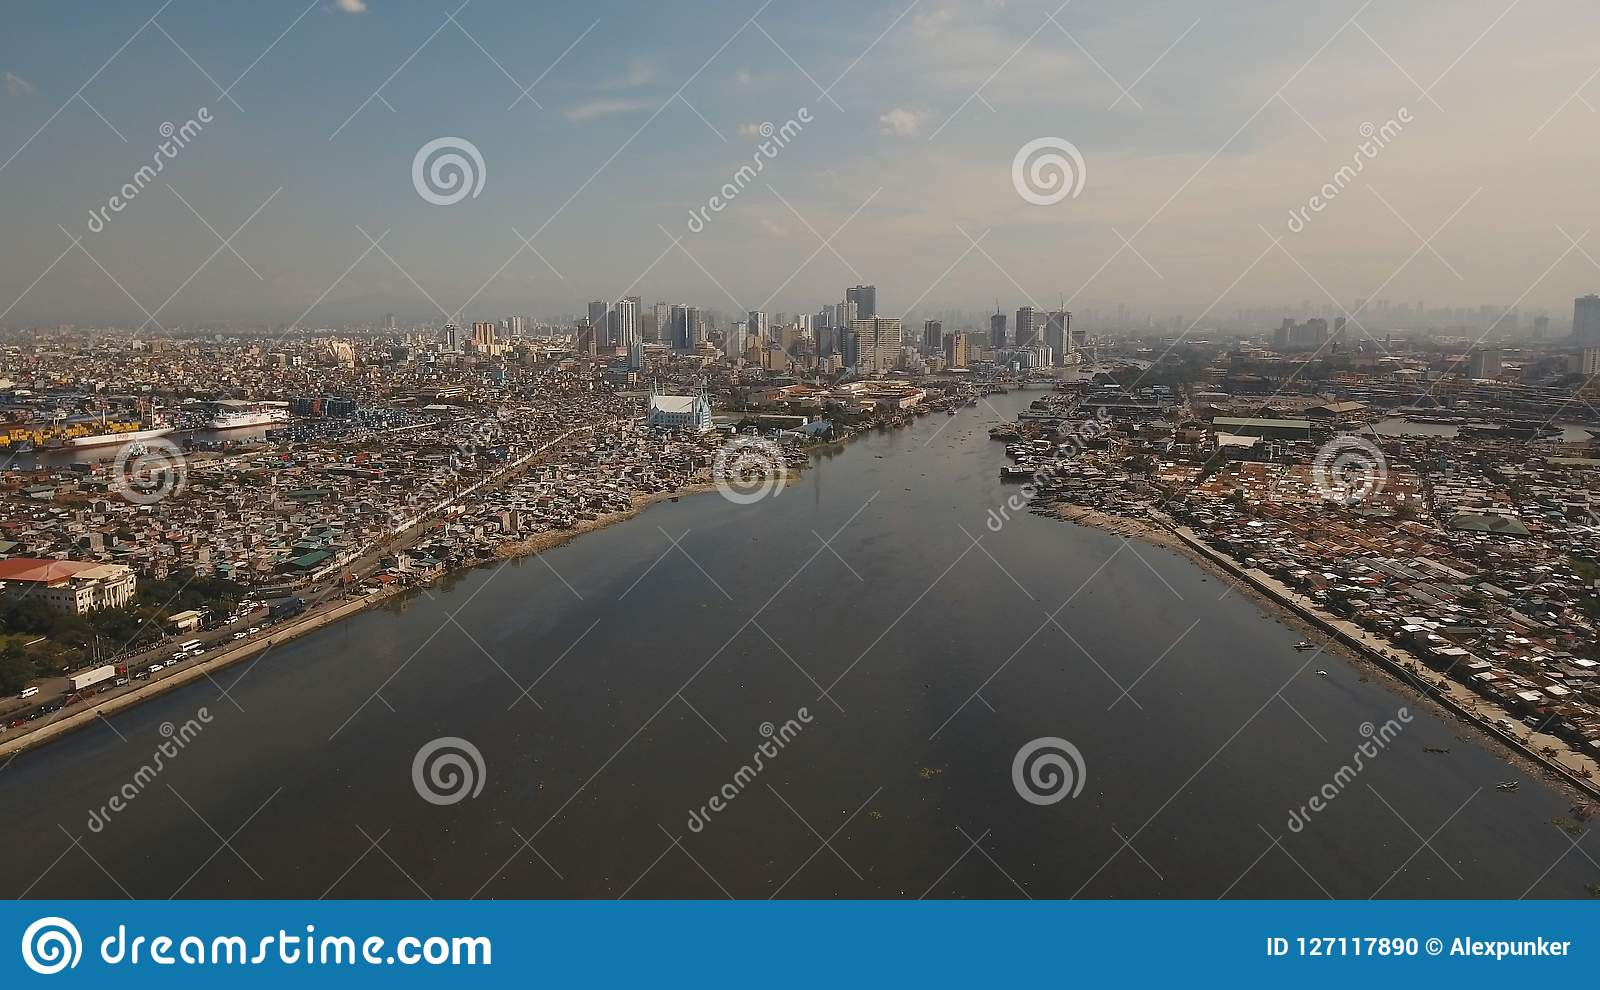 Aerial city with skyscrapers and buildings. Philippines, Manila, Makati.